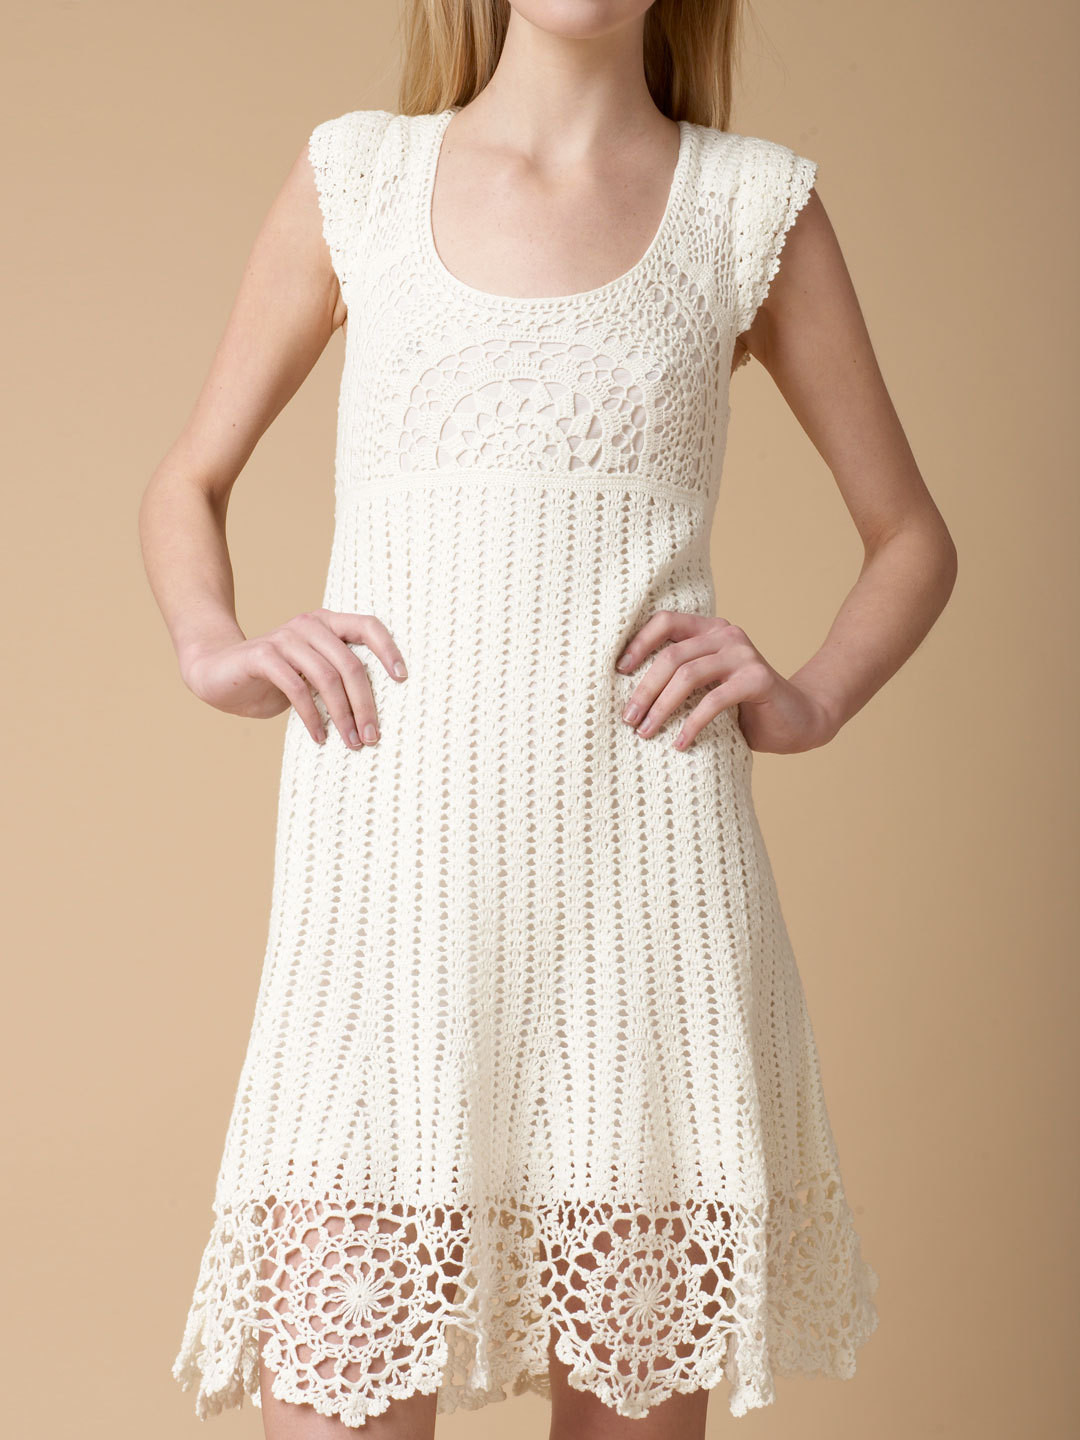 White Crochet Dress Luxury Crinochet Beautiful Dresses Of Adorable 49 Pics White Crochet Dress